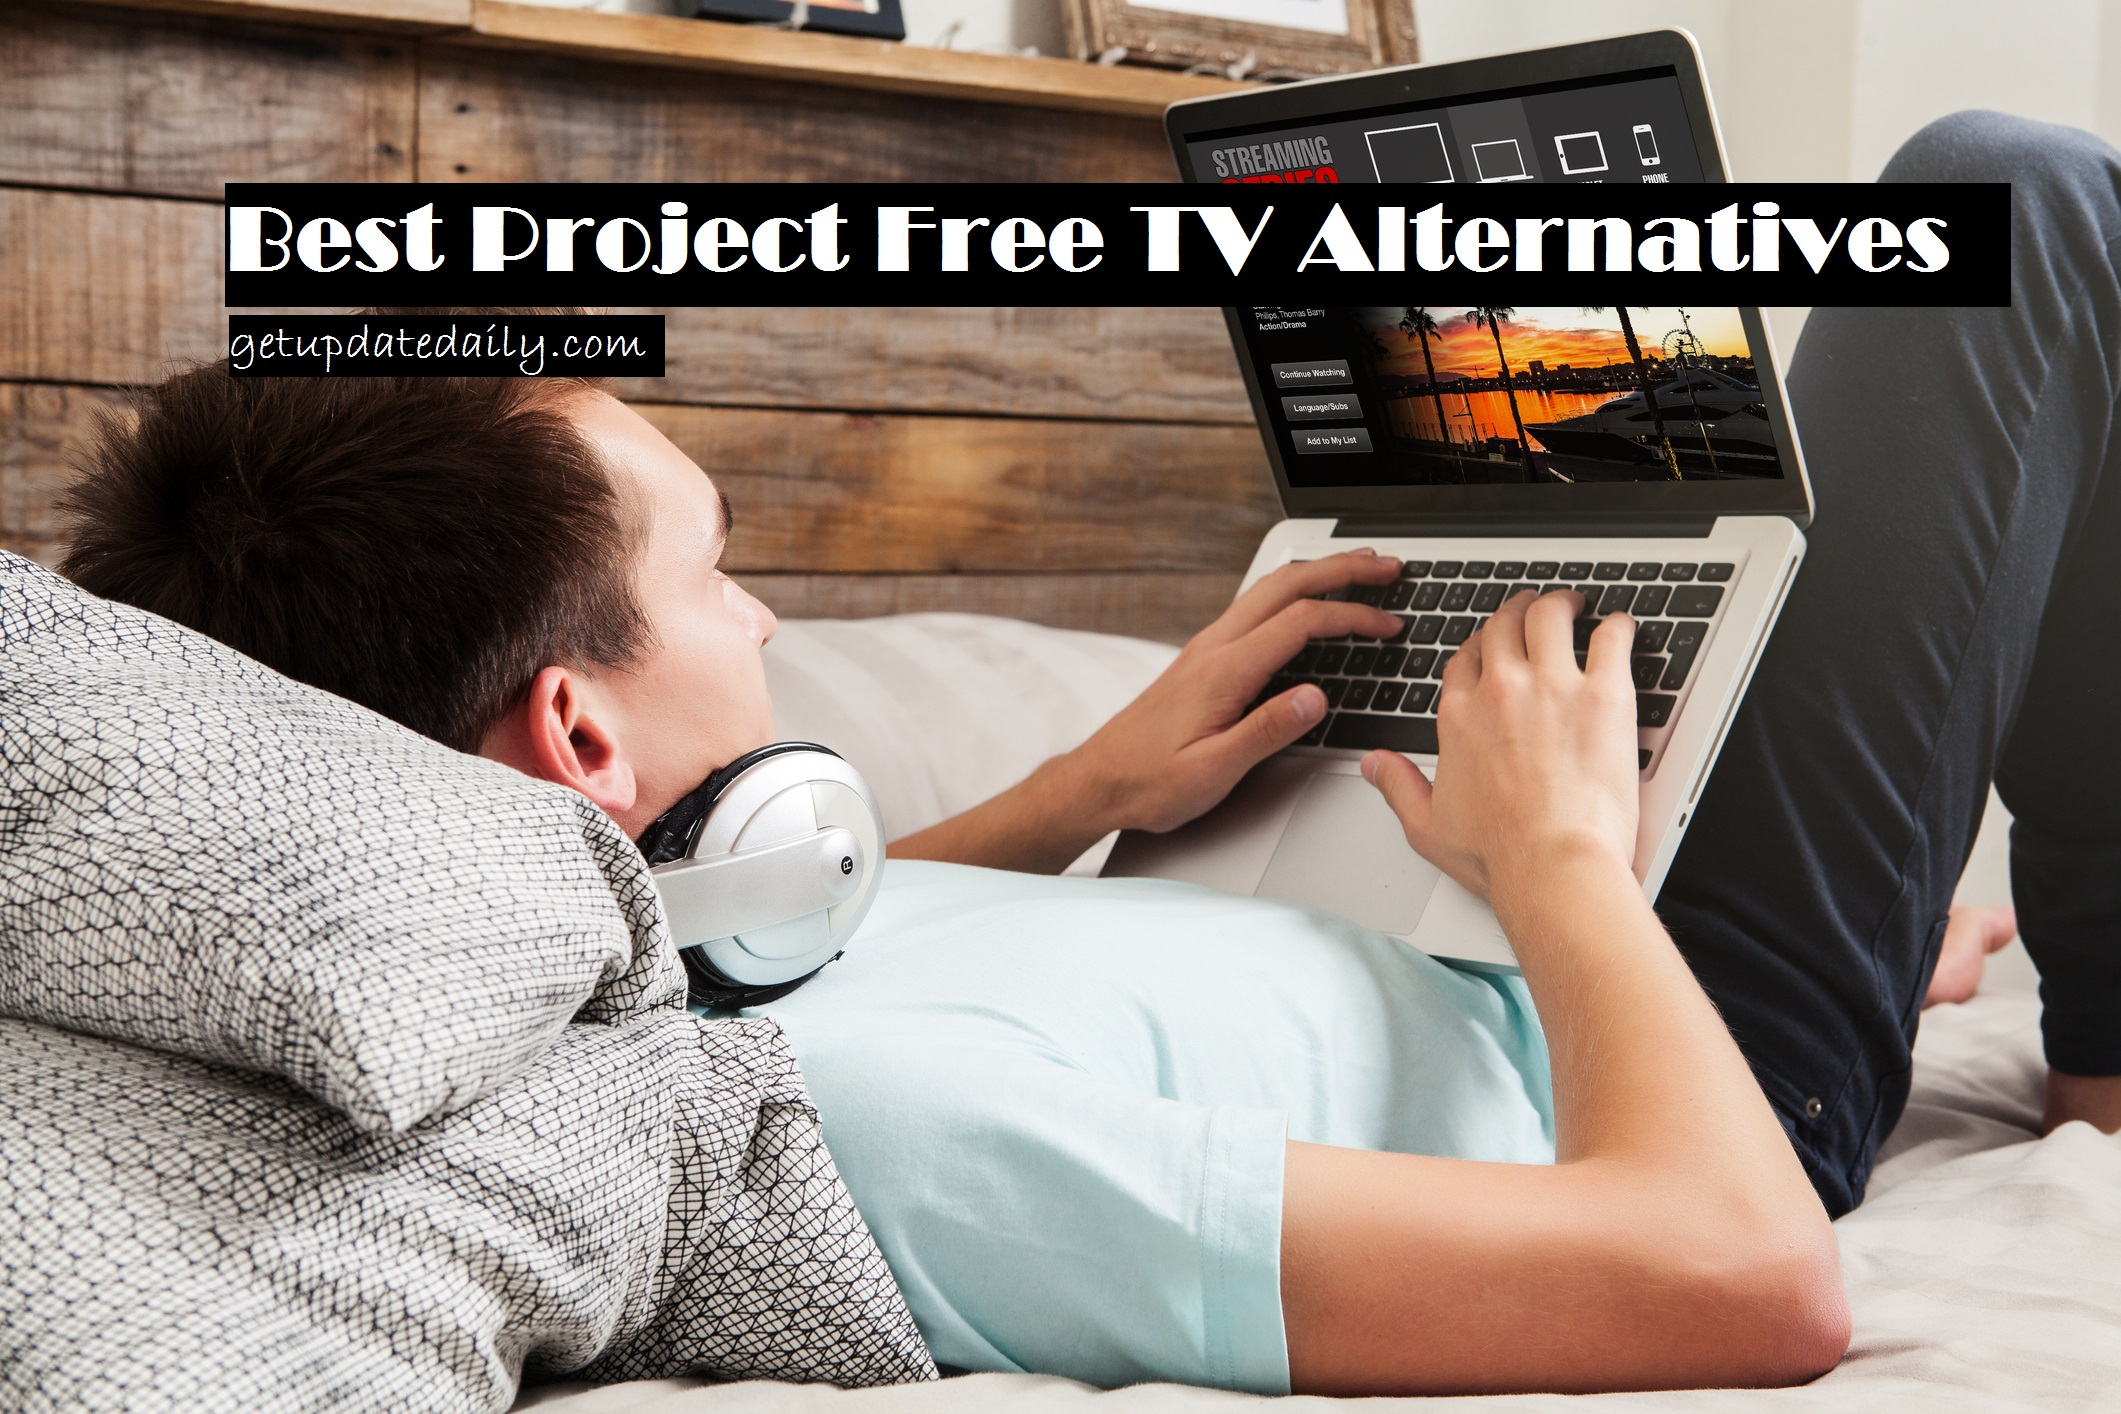 Best Alternatives Of Project Free Tv | Get Update Daily